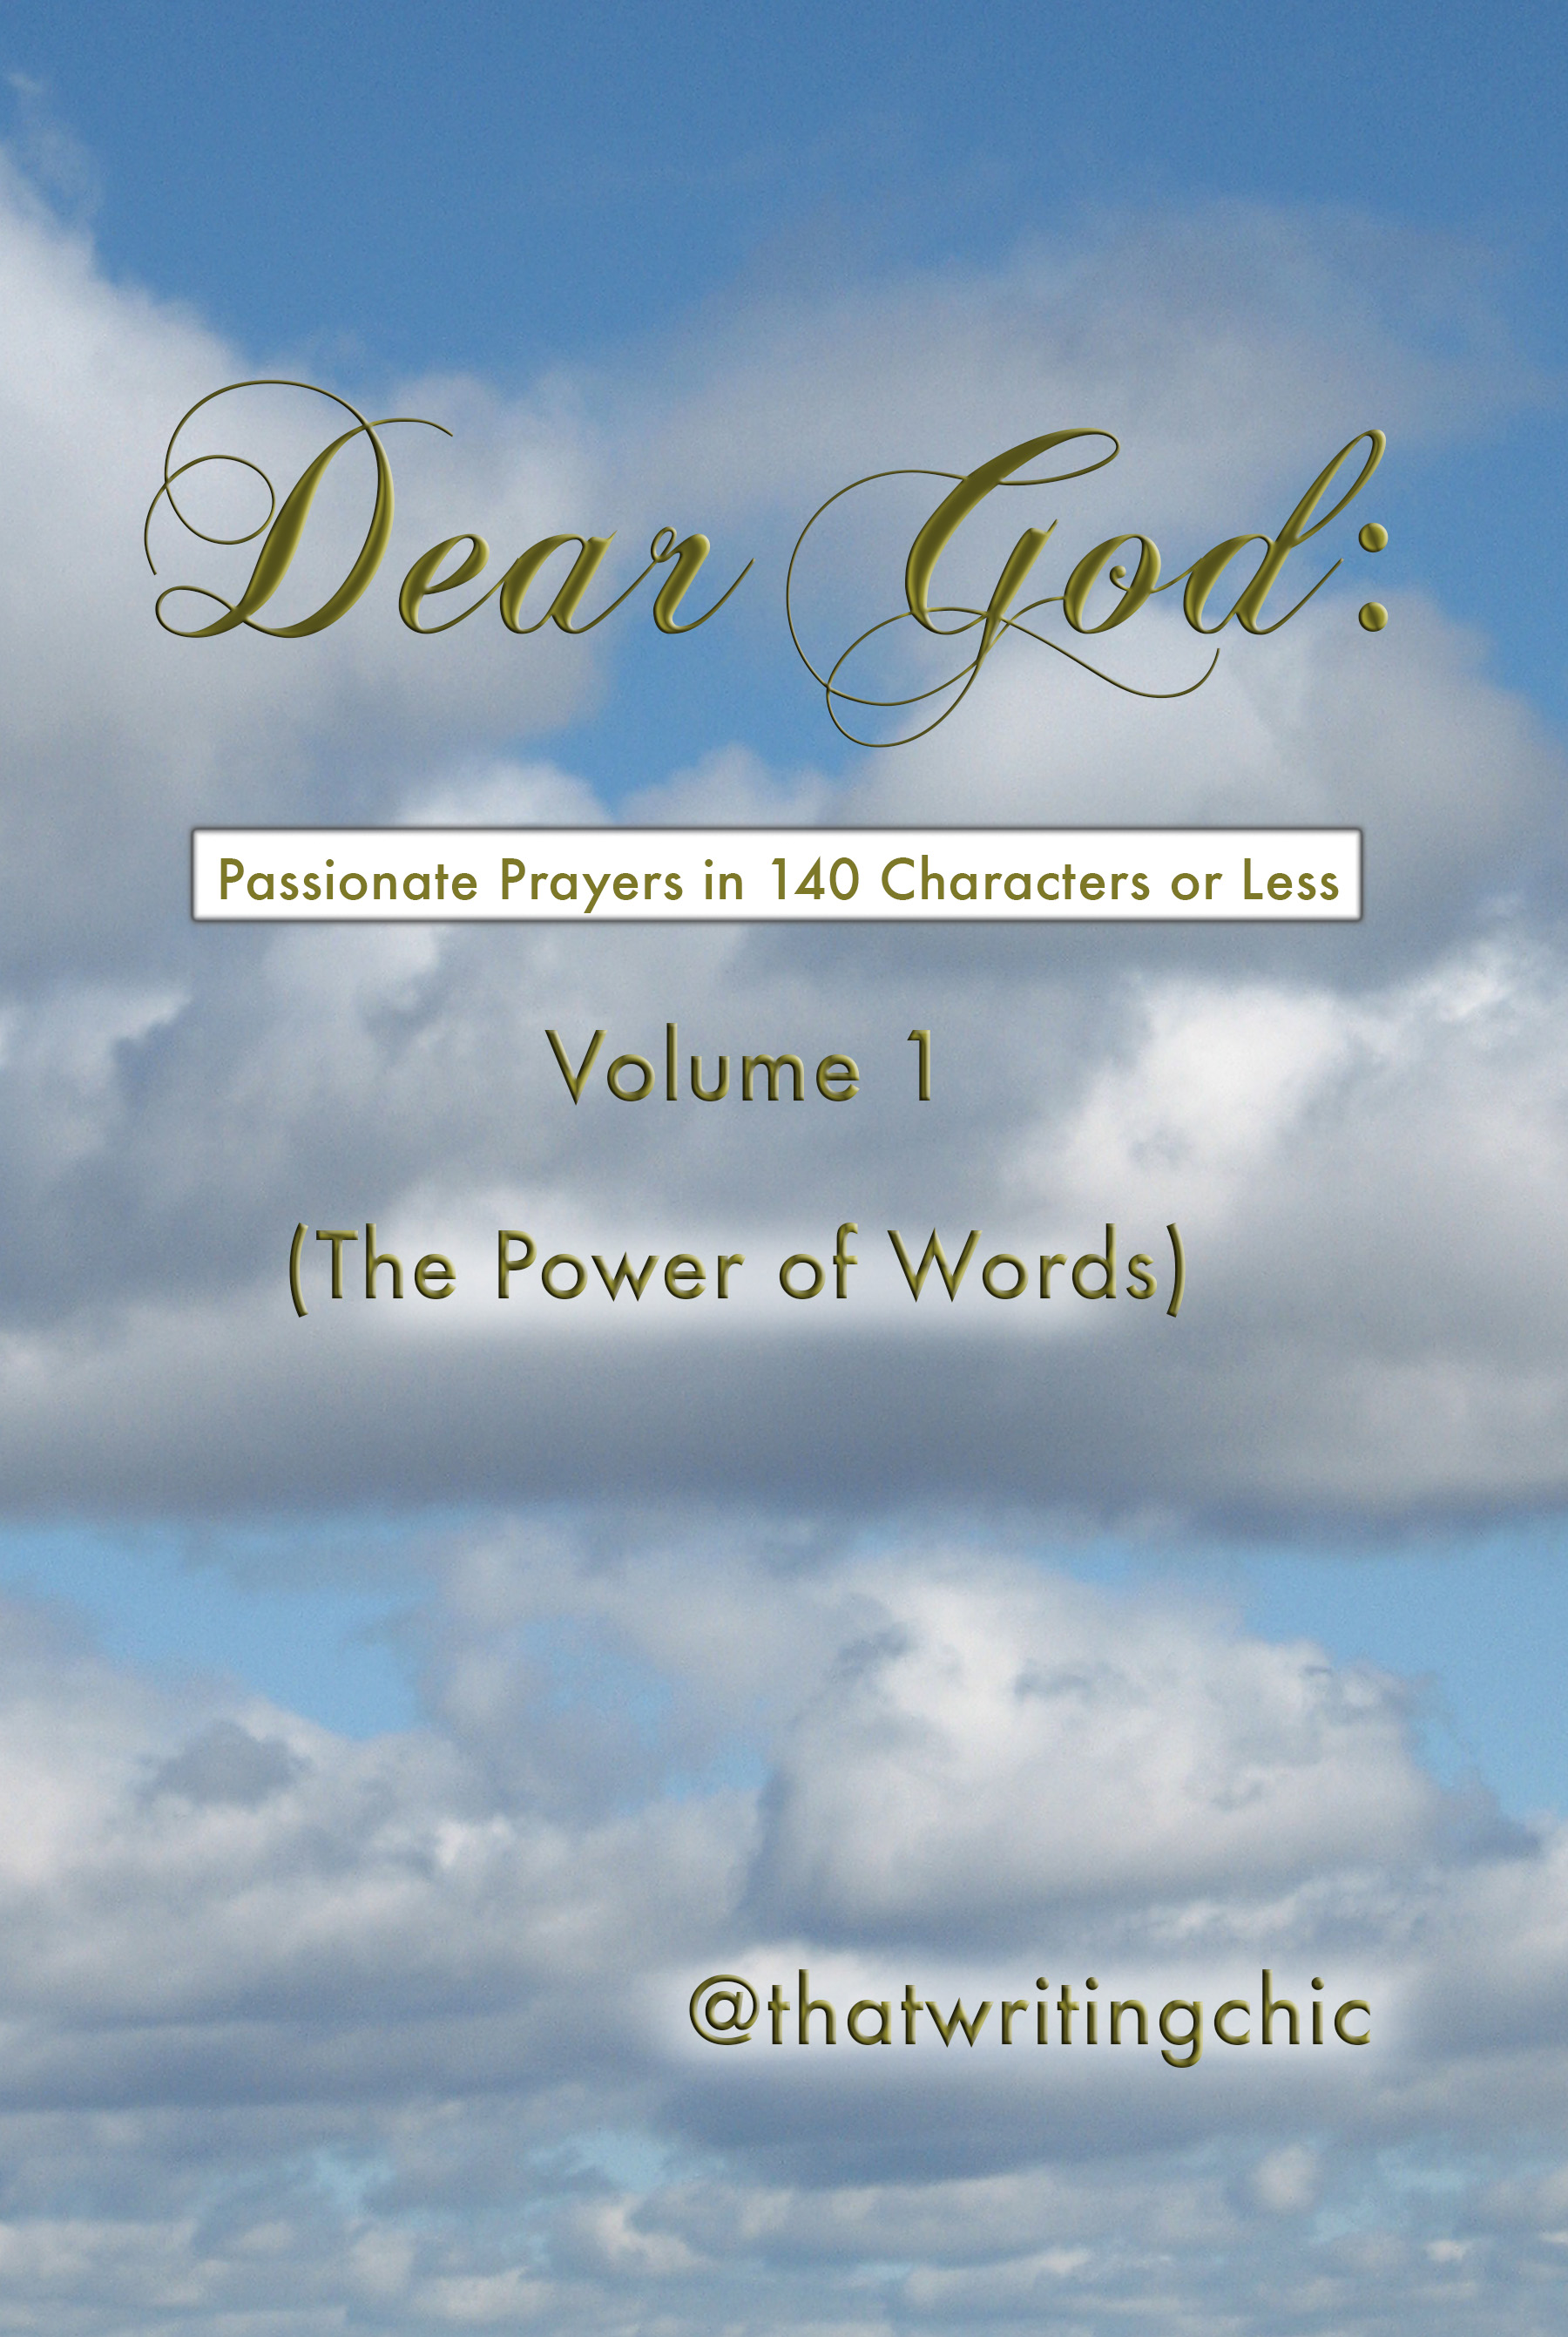 Dear God:  Passionate Prayers in 140 Characters or Less - Volume 1 (The Power of Words)